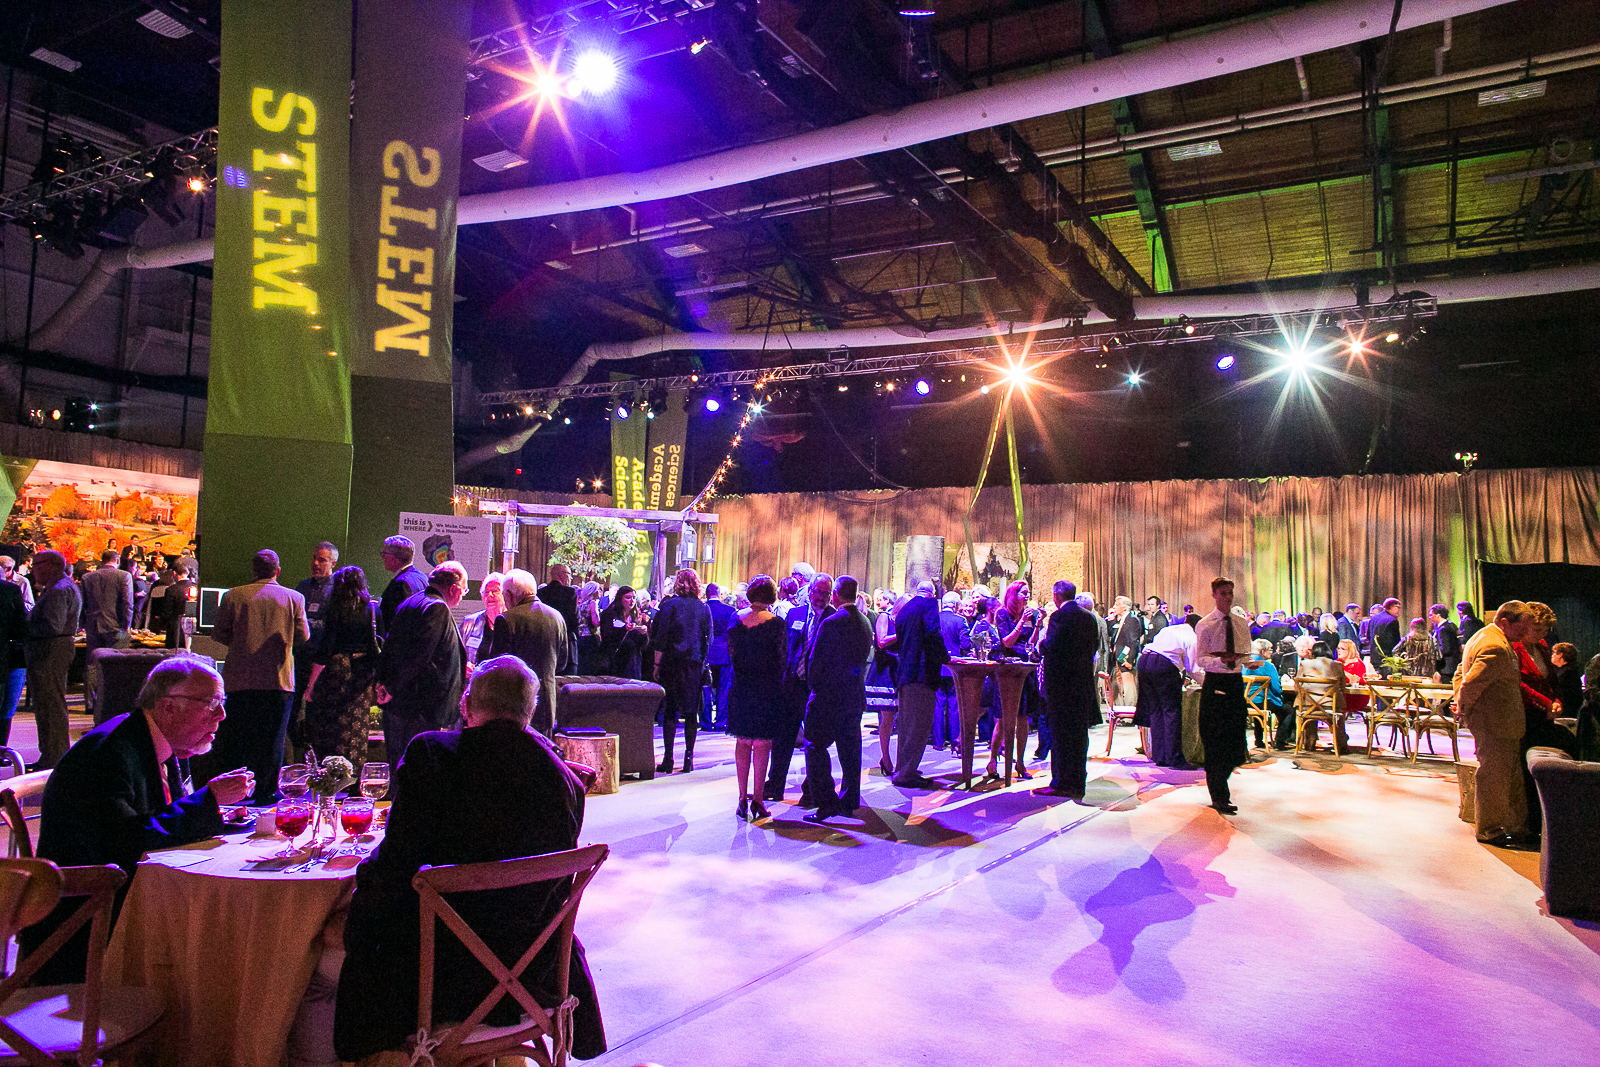 Guests enjoy food and drink at the University of Vermont Foundation Campaign Gala. Event design by Feats Inc.